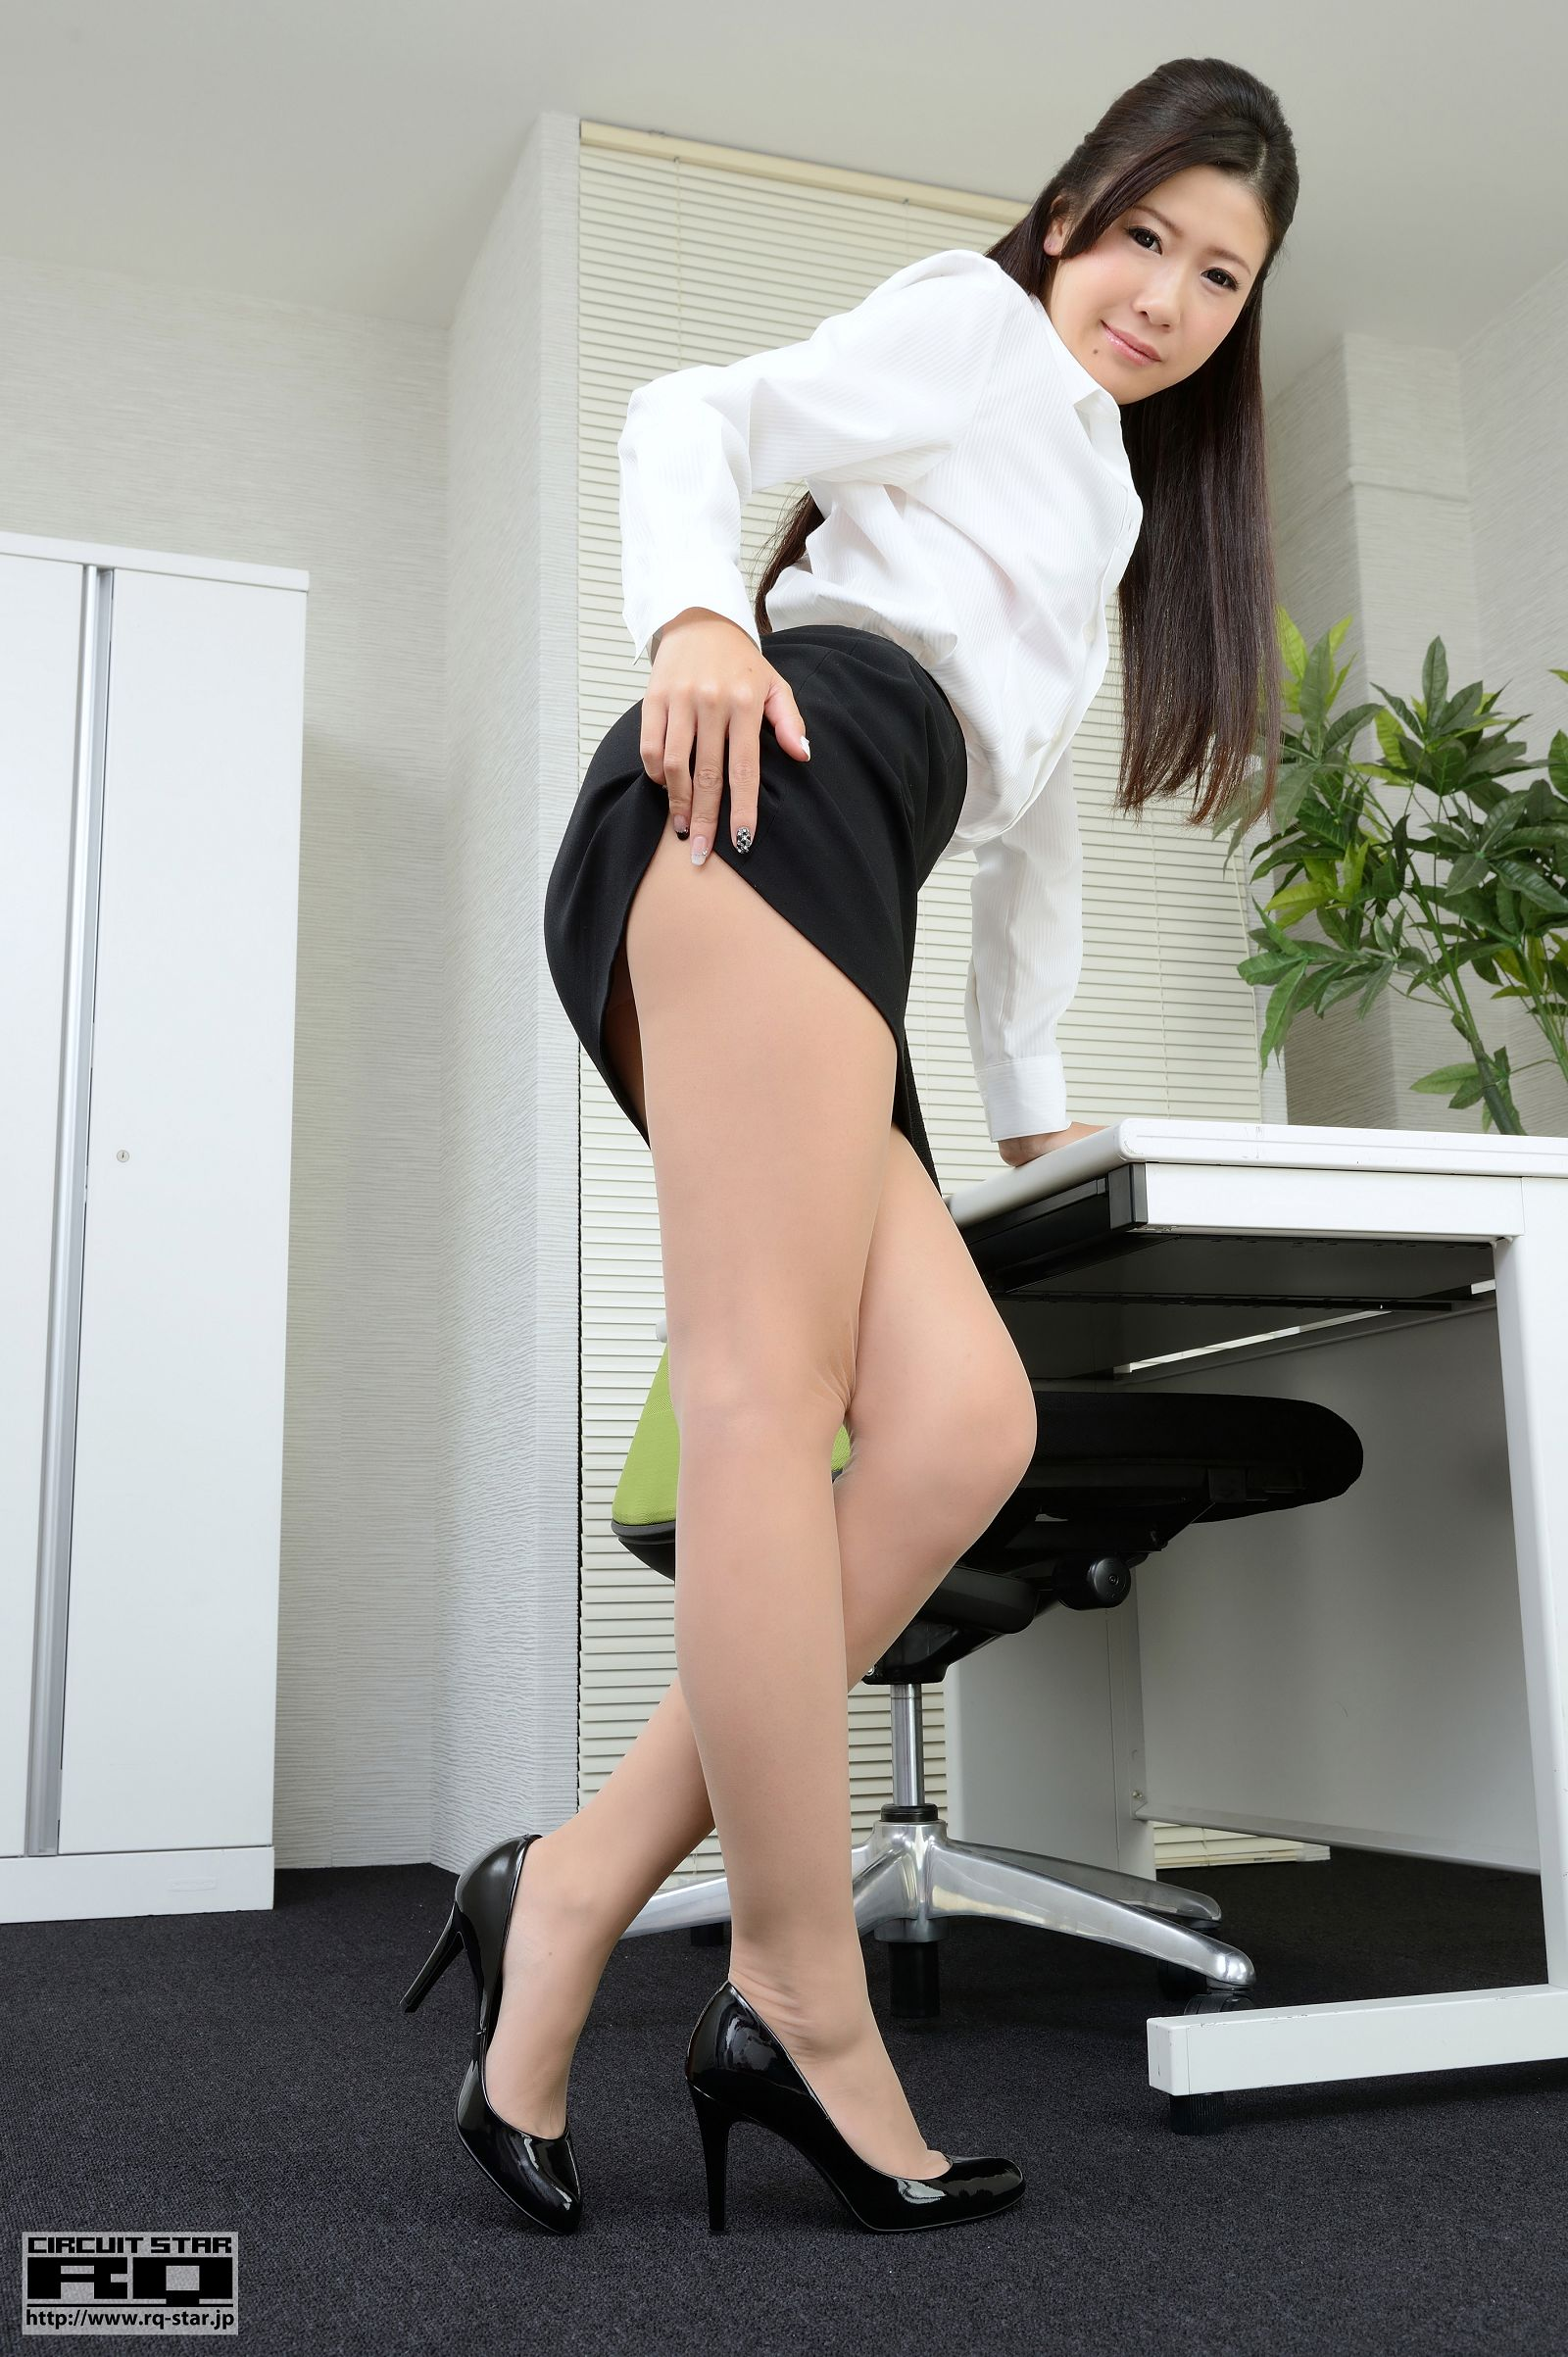 [RQ STAR美女] NO.00873 Miyu Sano 佐野美由 Office Lady[85P] RQ STAR 第3张